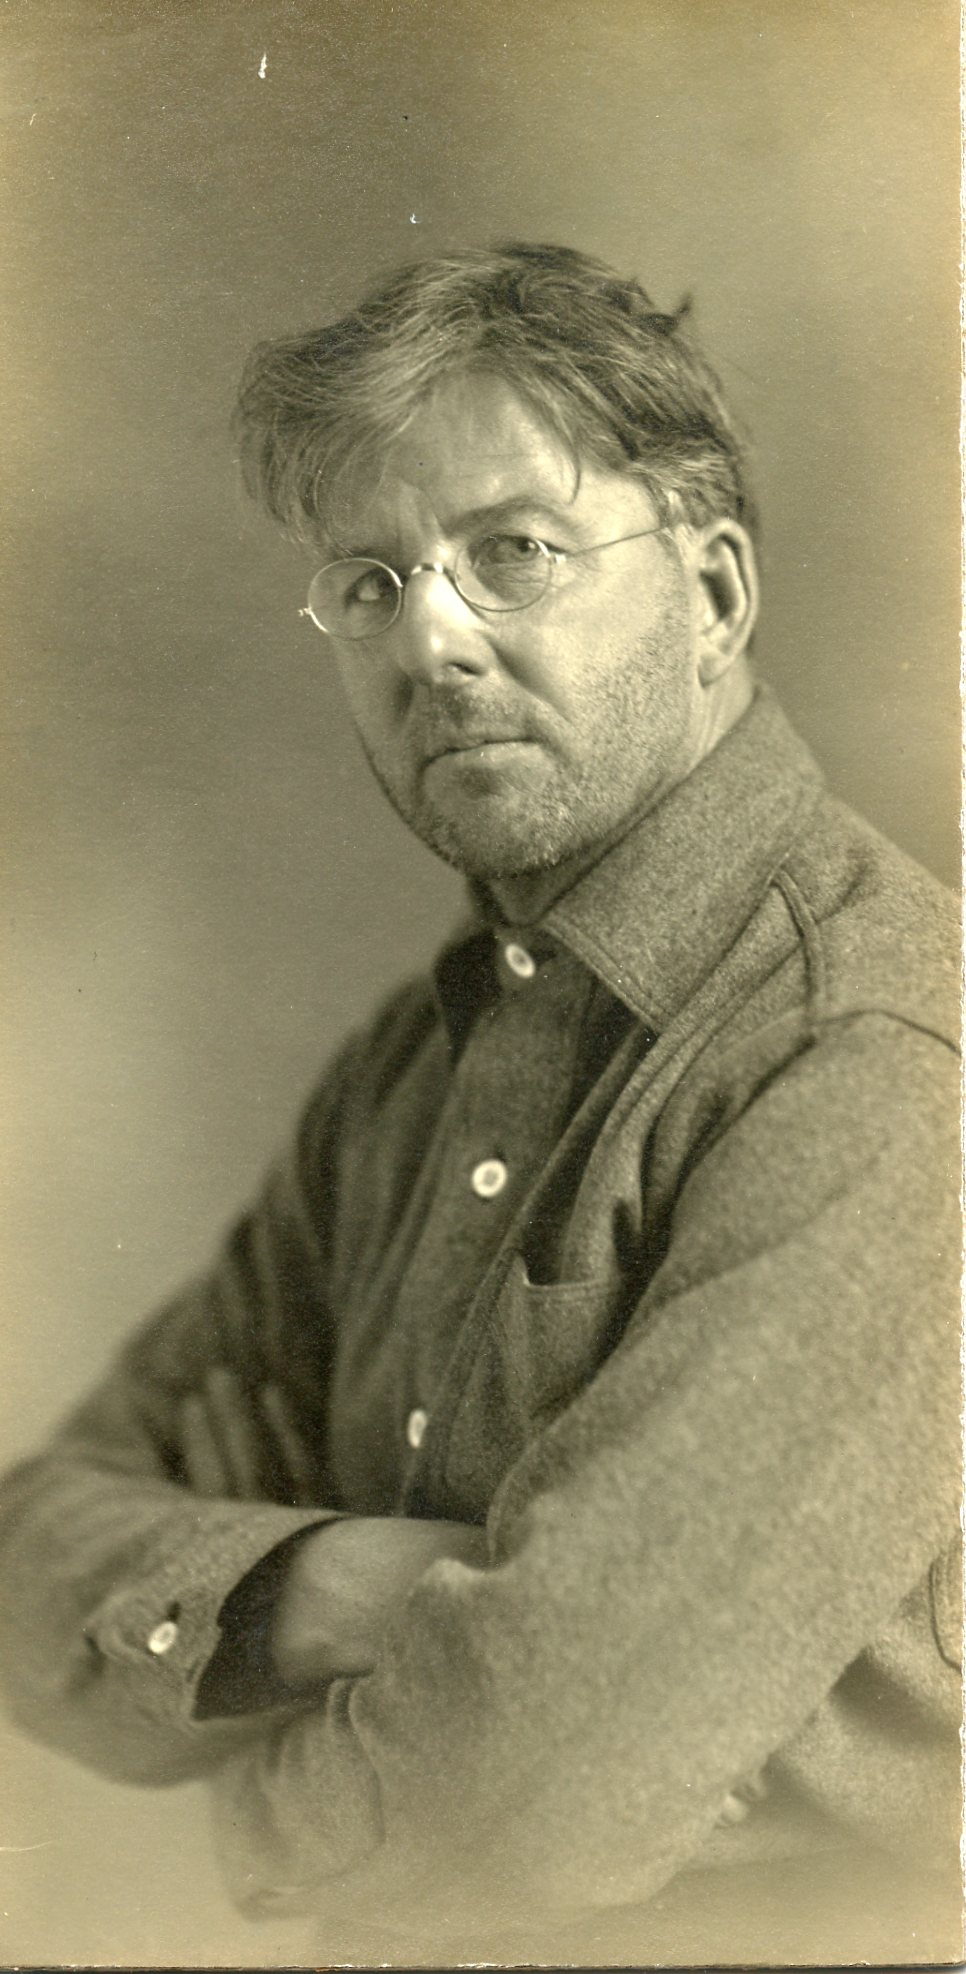 Image of Roland W. Reed from Wikidata